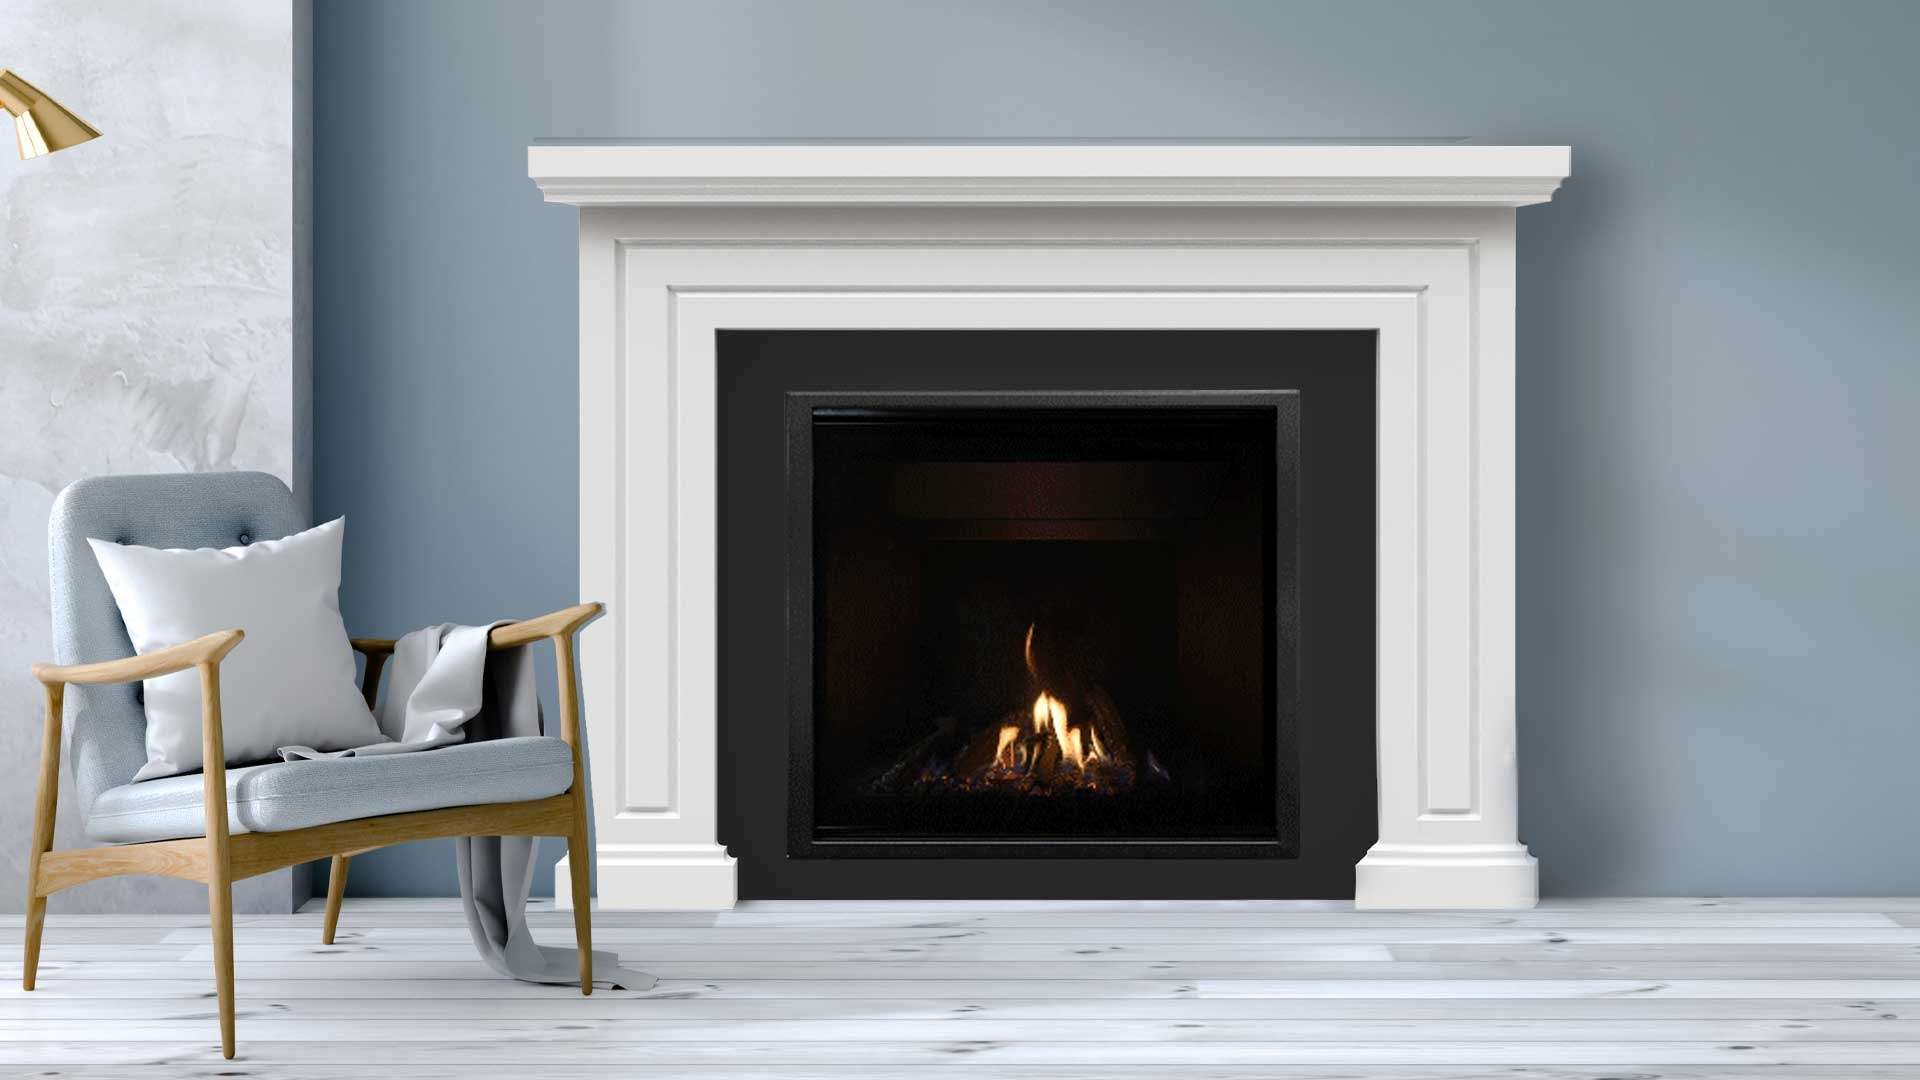 Close up of an Escea DF990 indoor gas fireplace in modern home